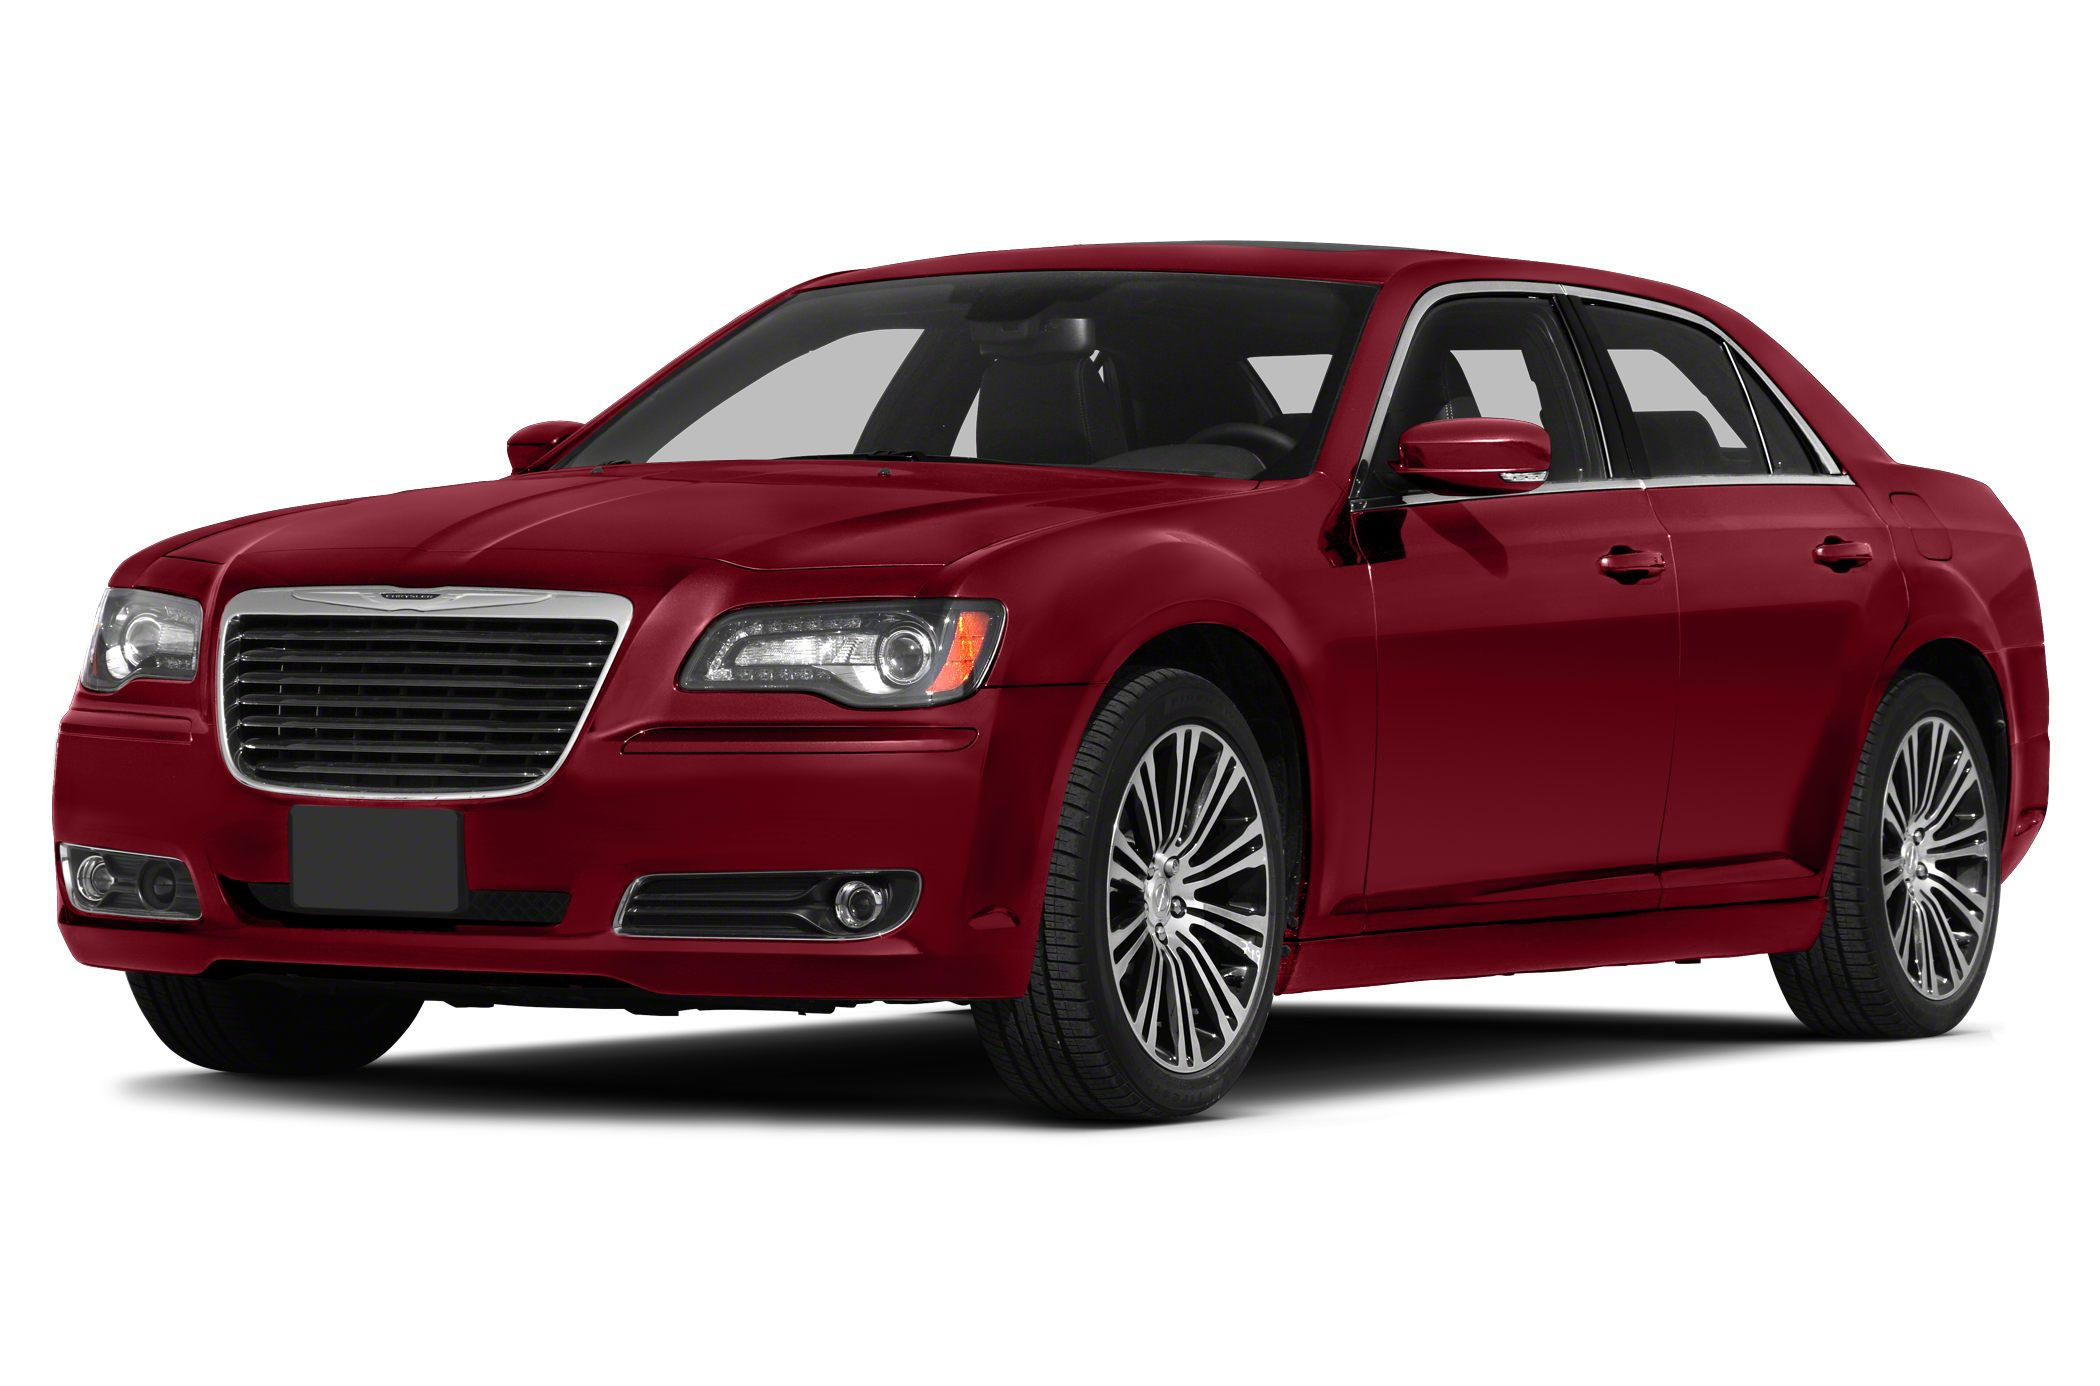 2014 Chrysler 300 S Sedan for sale in Clinton for $22,684 with 15,401 miles.